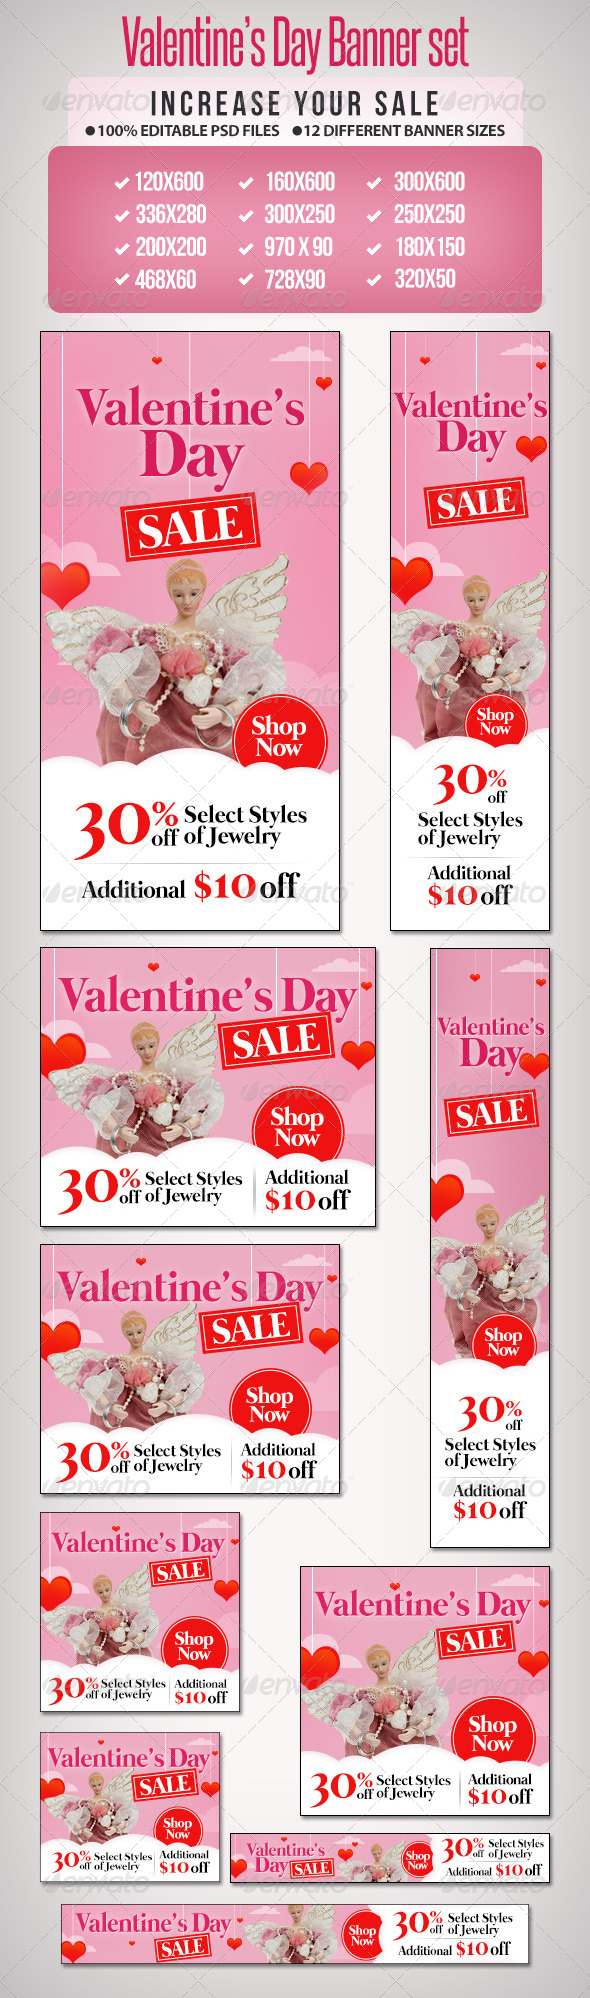 Valentines Day Sale Banner Set 2